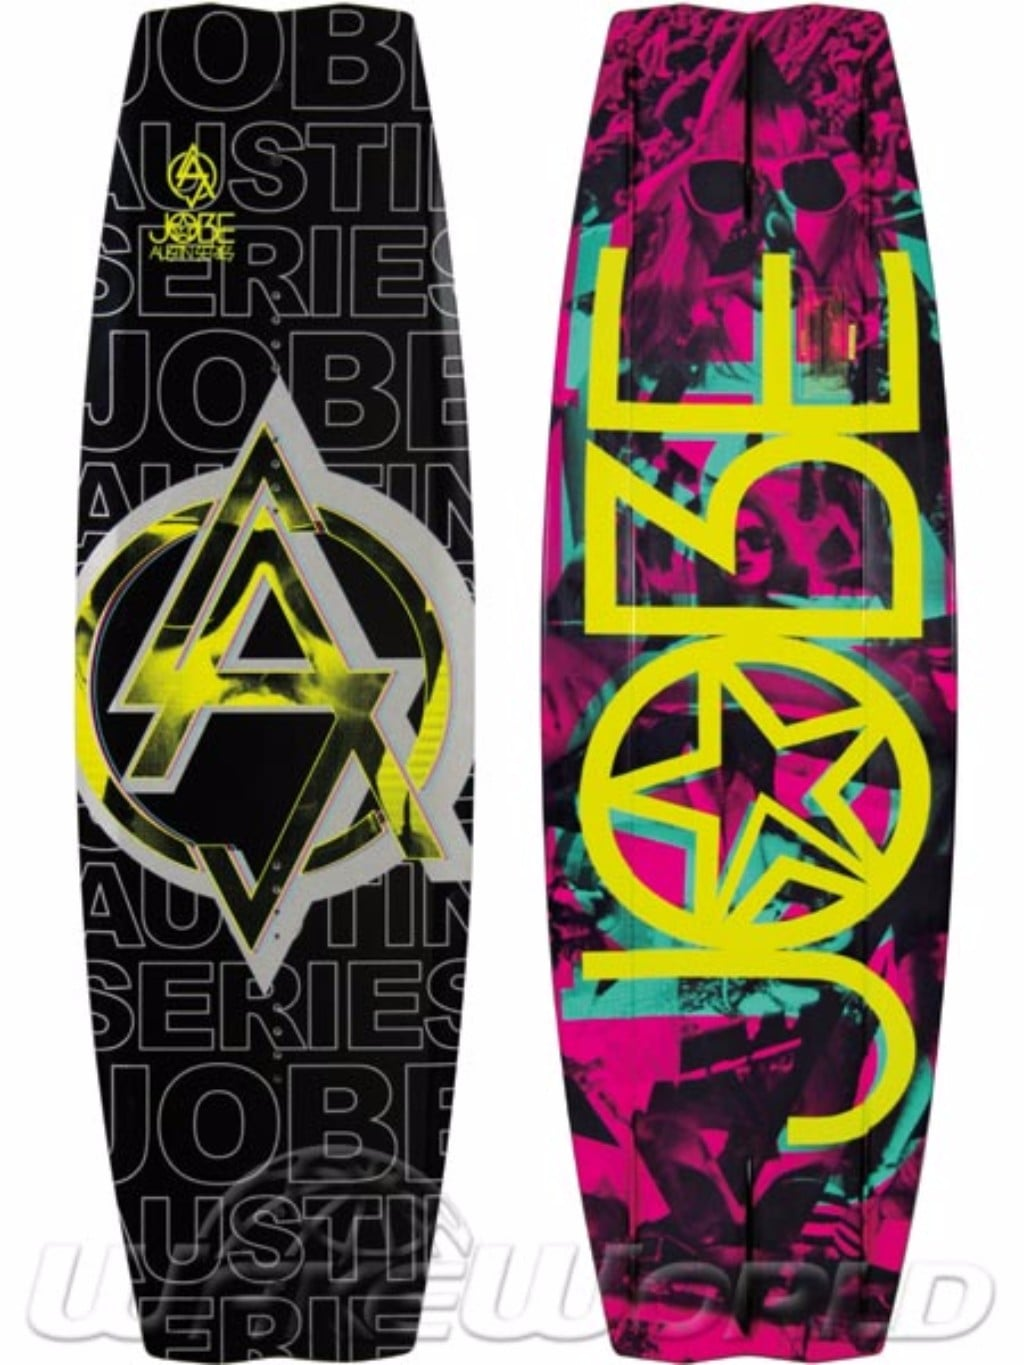 Jobe Austin Series Wakeboard Review